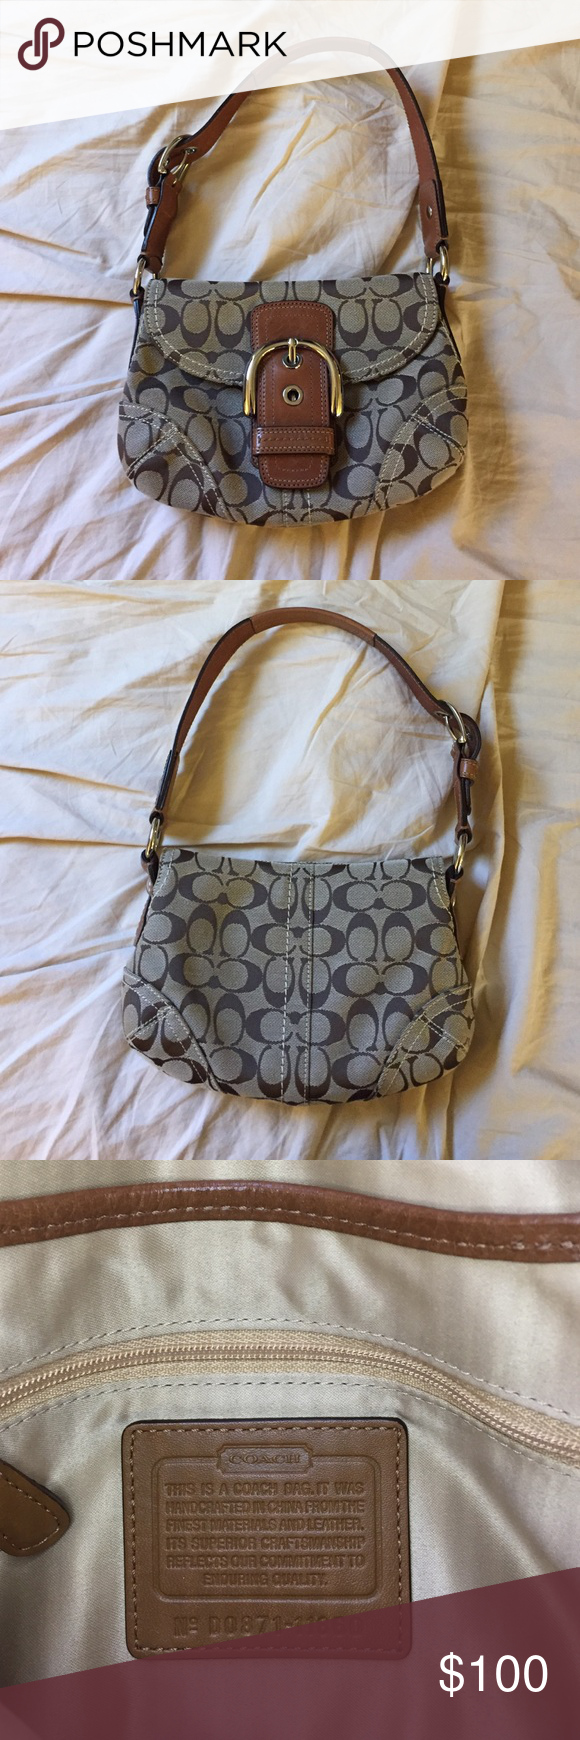 Smallmini Coach Handbag Hey Loves Here Is A Small Brown Almost